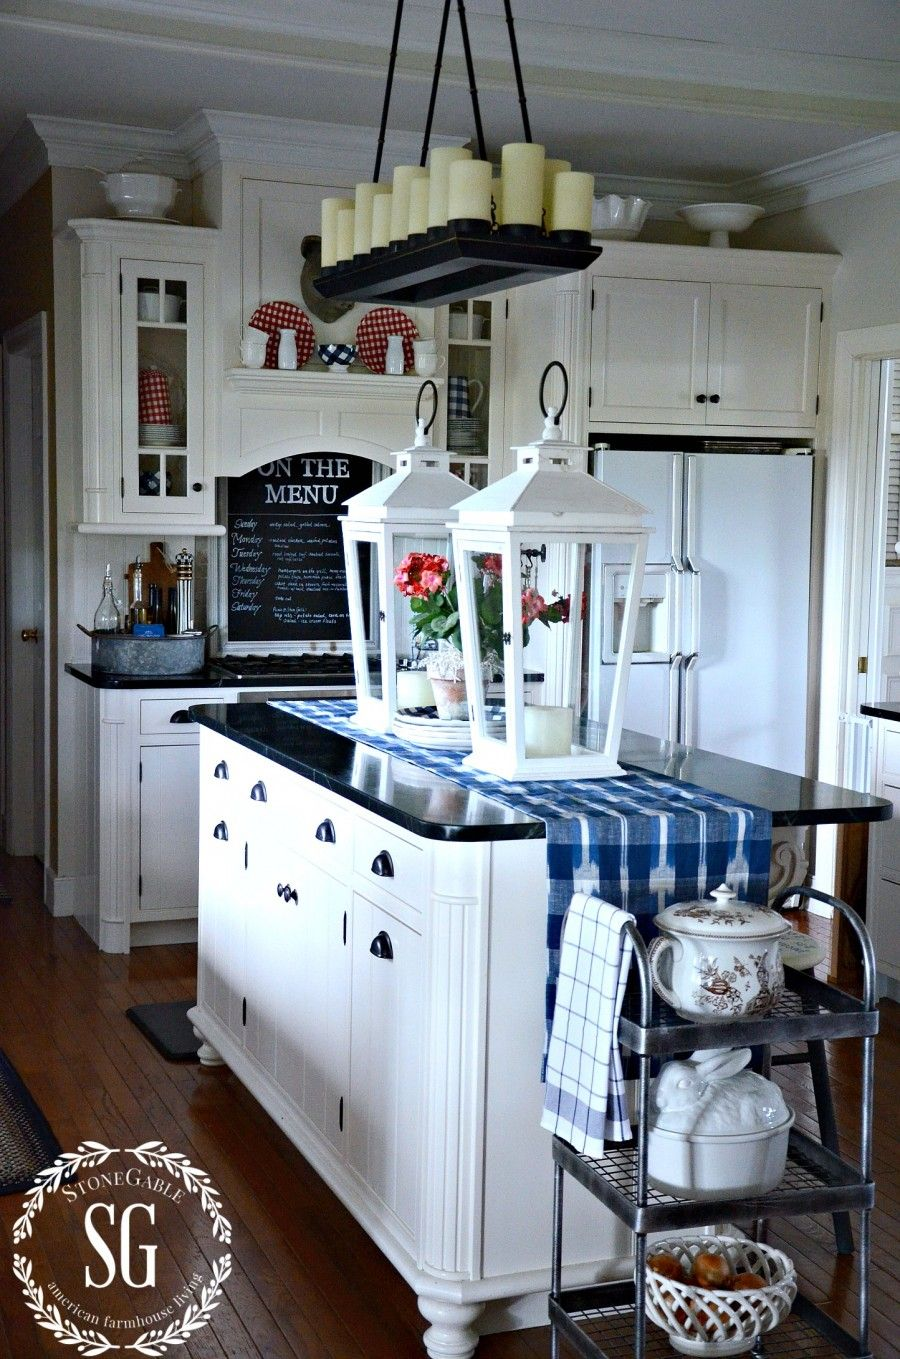 bHOME SUMMER OPEN HOUSE TOUR | Pinterest | Summer kitchen, Open ...